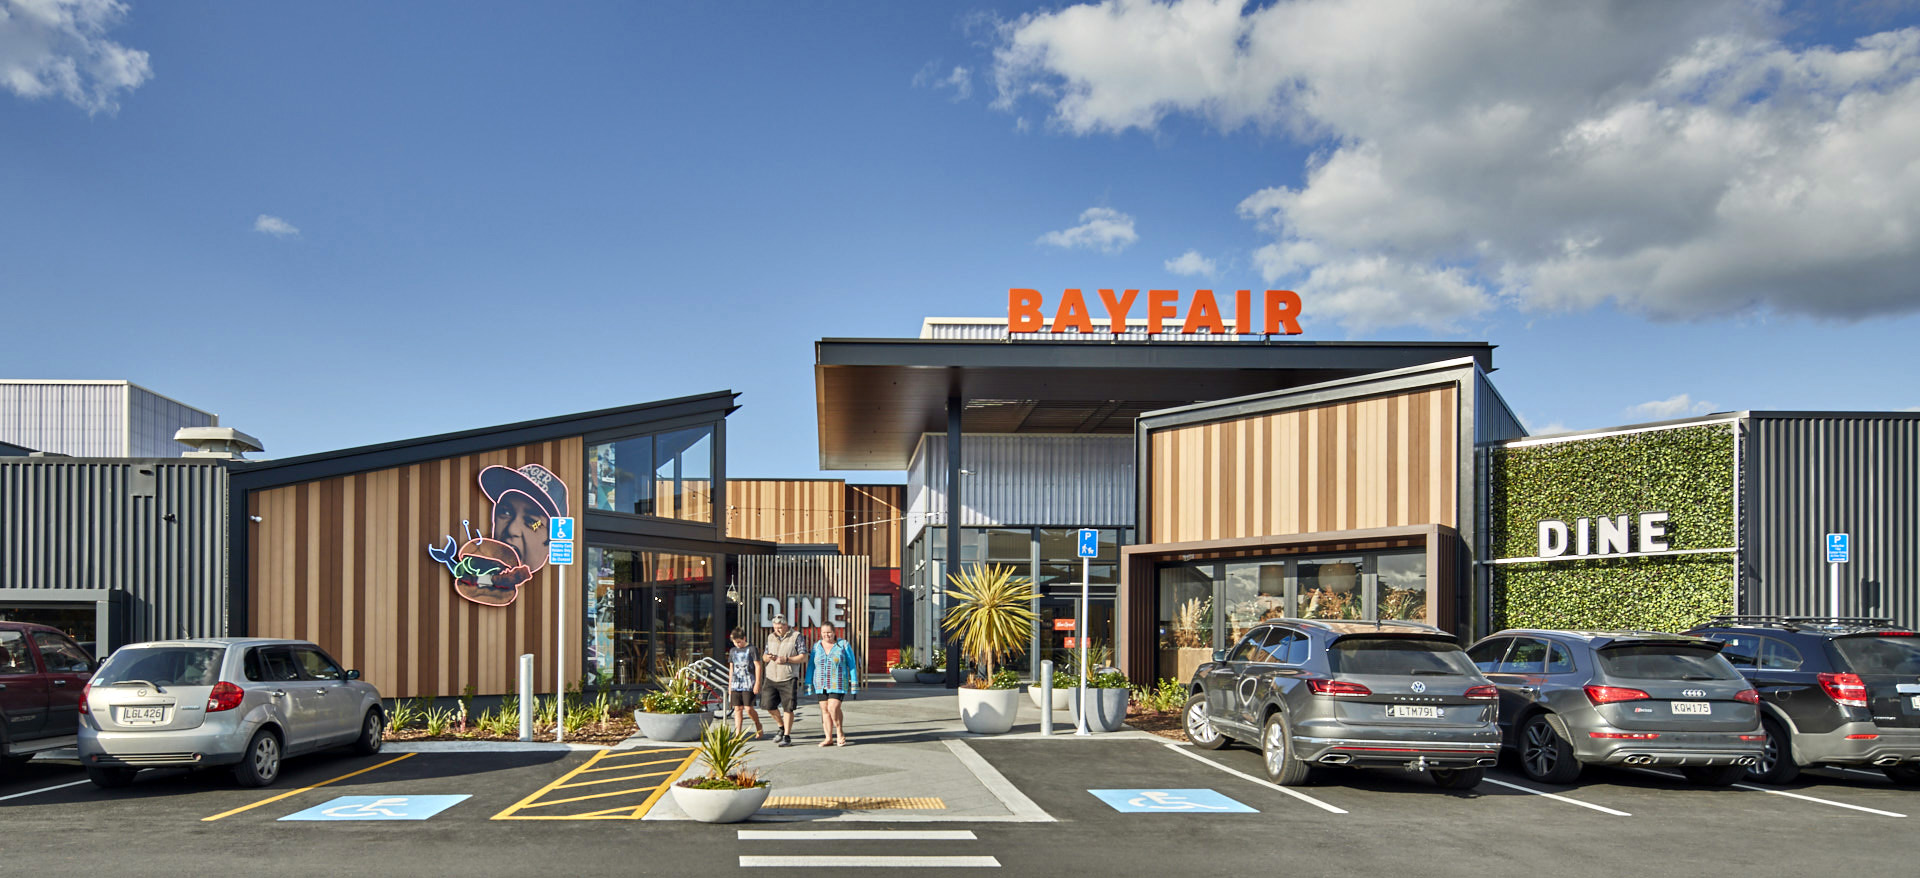 Bayfair Shopping Centre